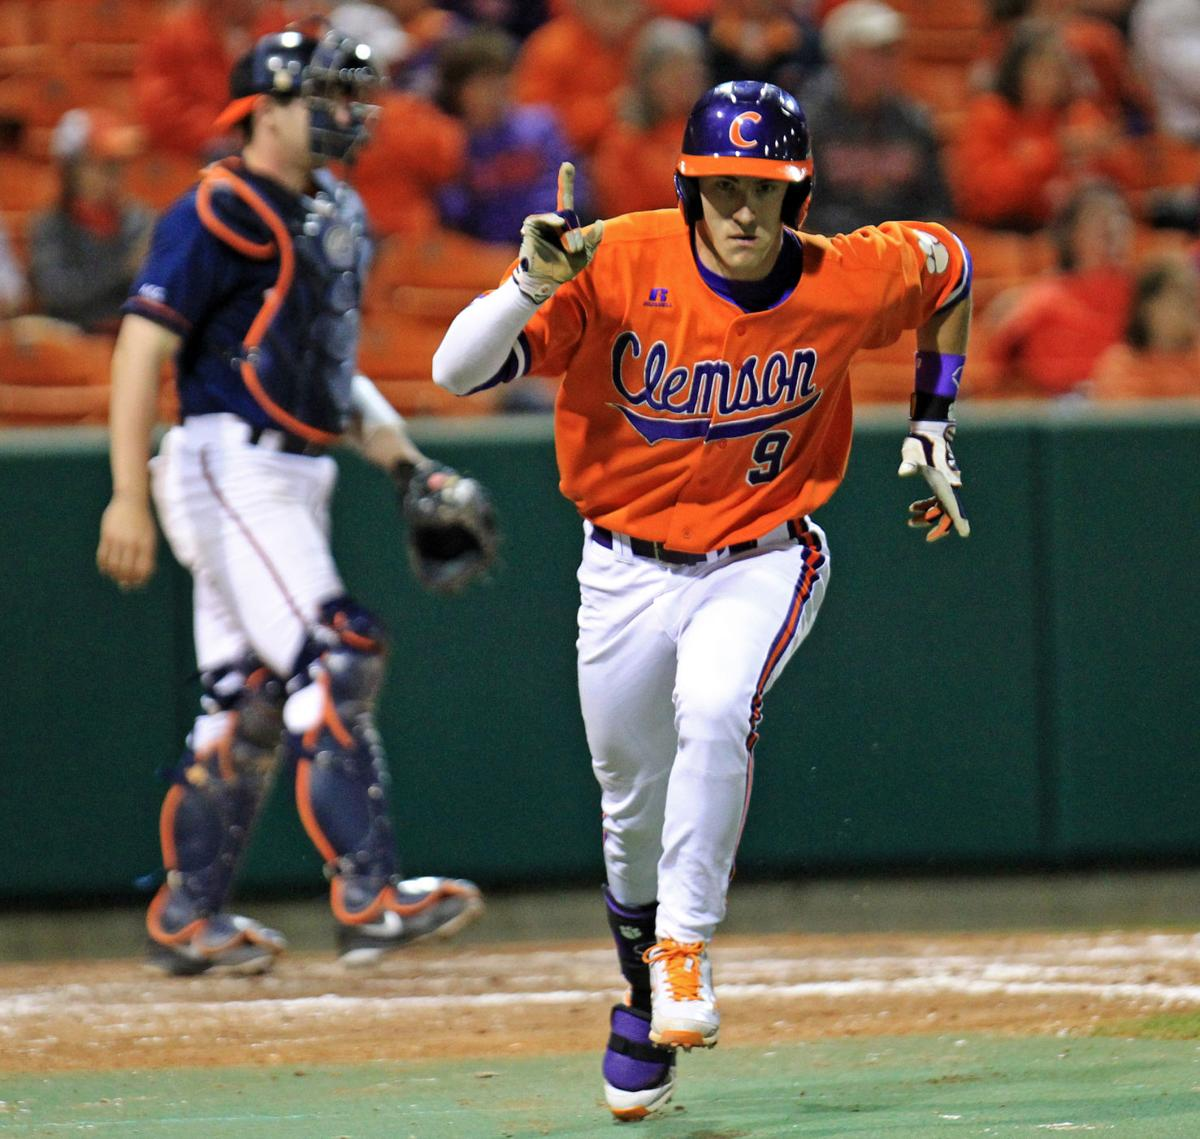 Now's the time for Clemson hitters to produce in NCAA regional